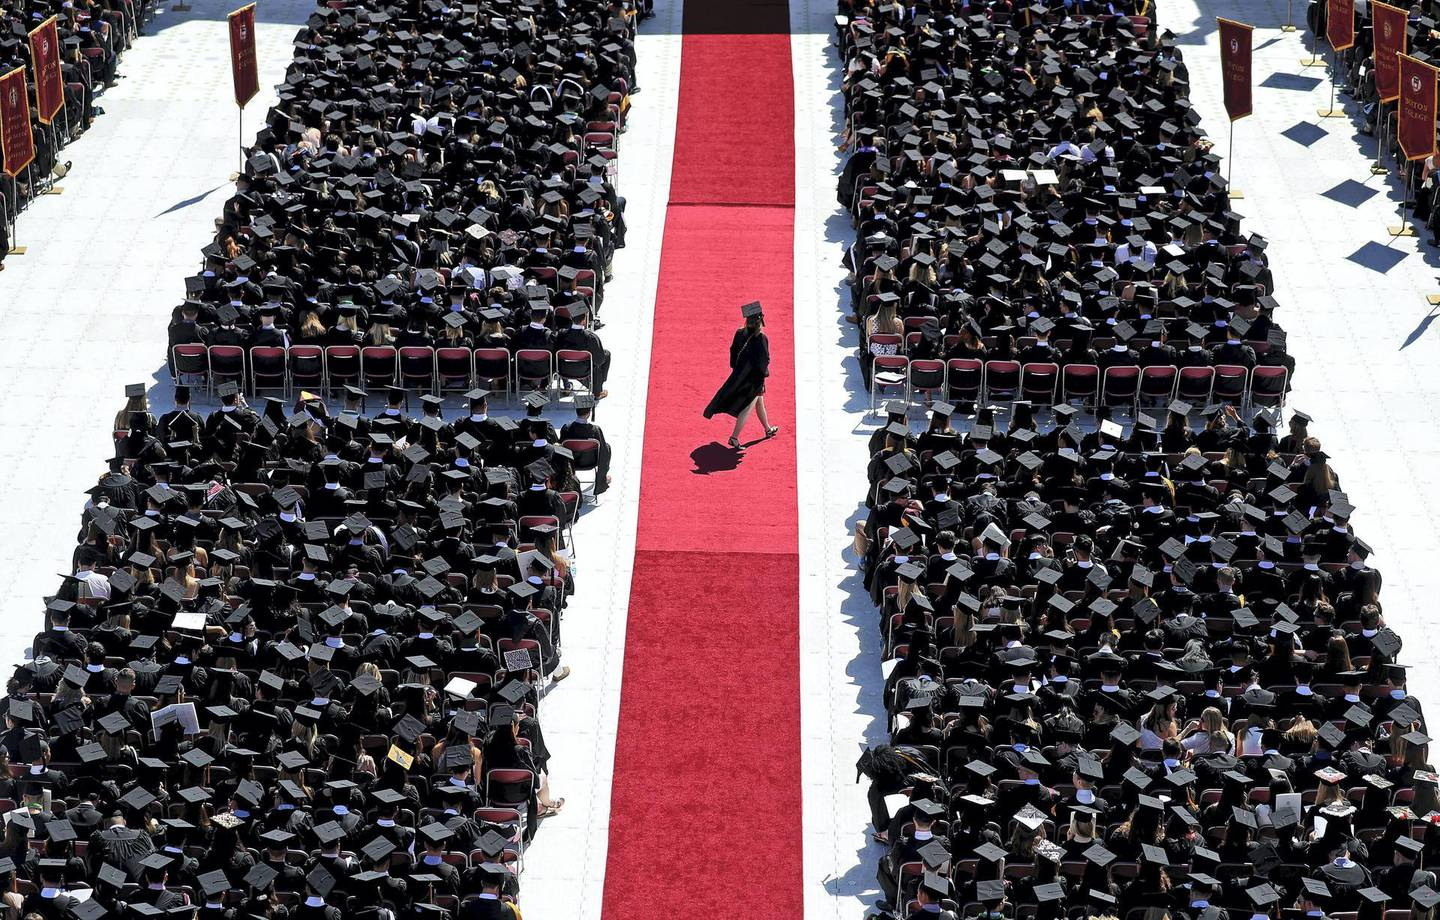 BOSTON, MA - MAY 21: A graduate crosses the red carpet during the Boston College commencement at Alumni Stadium in Boston on May 21, 2018. (Photo by David L. Ryan/The Boston Globe via Getty Images)